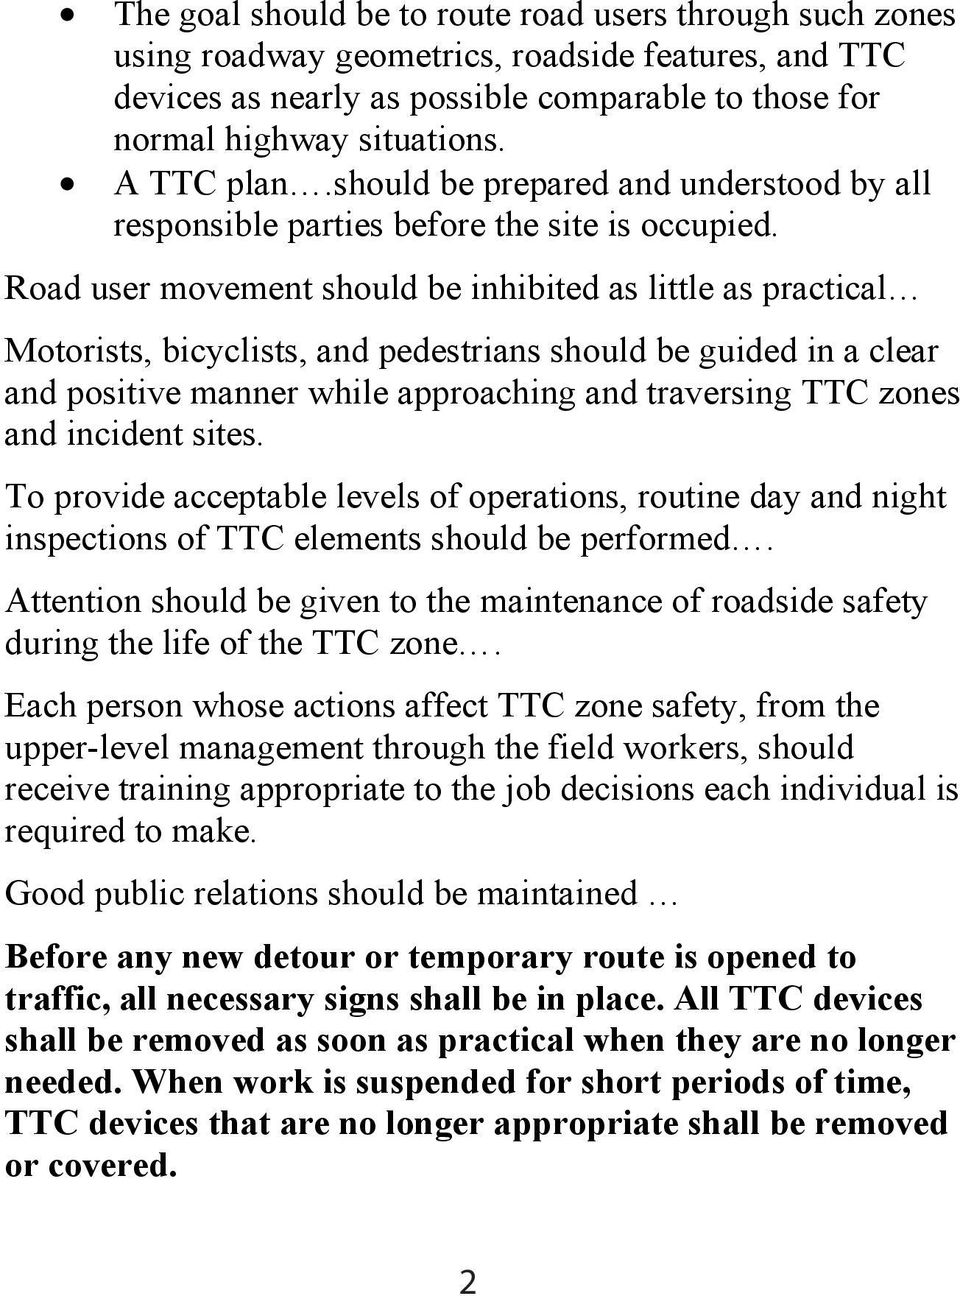 Road user movement should be inhibited as little as practical Motorists, bicyclists, and pedestrians should be guided in a clear and positive manner while approaching and traversing TTC zones and